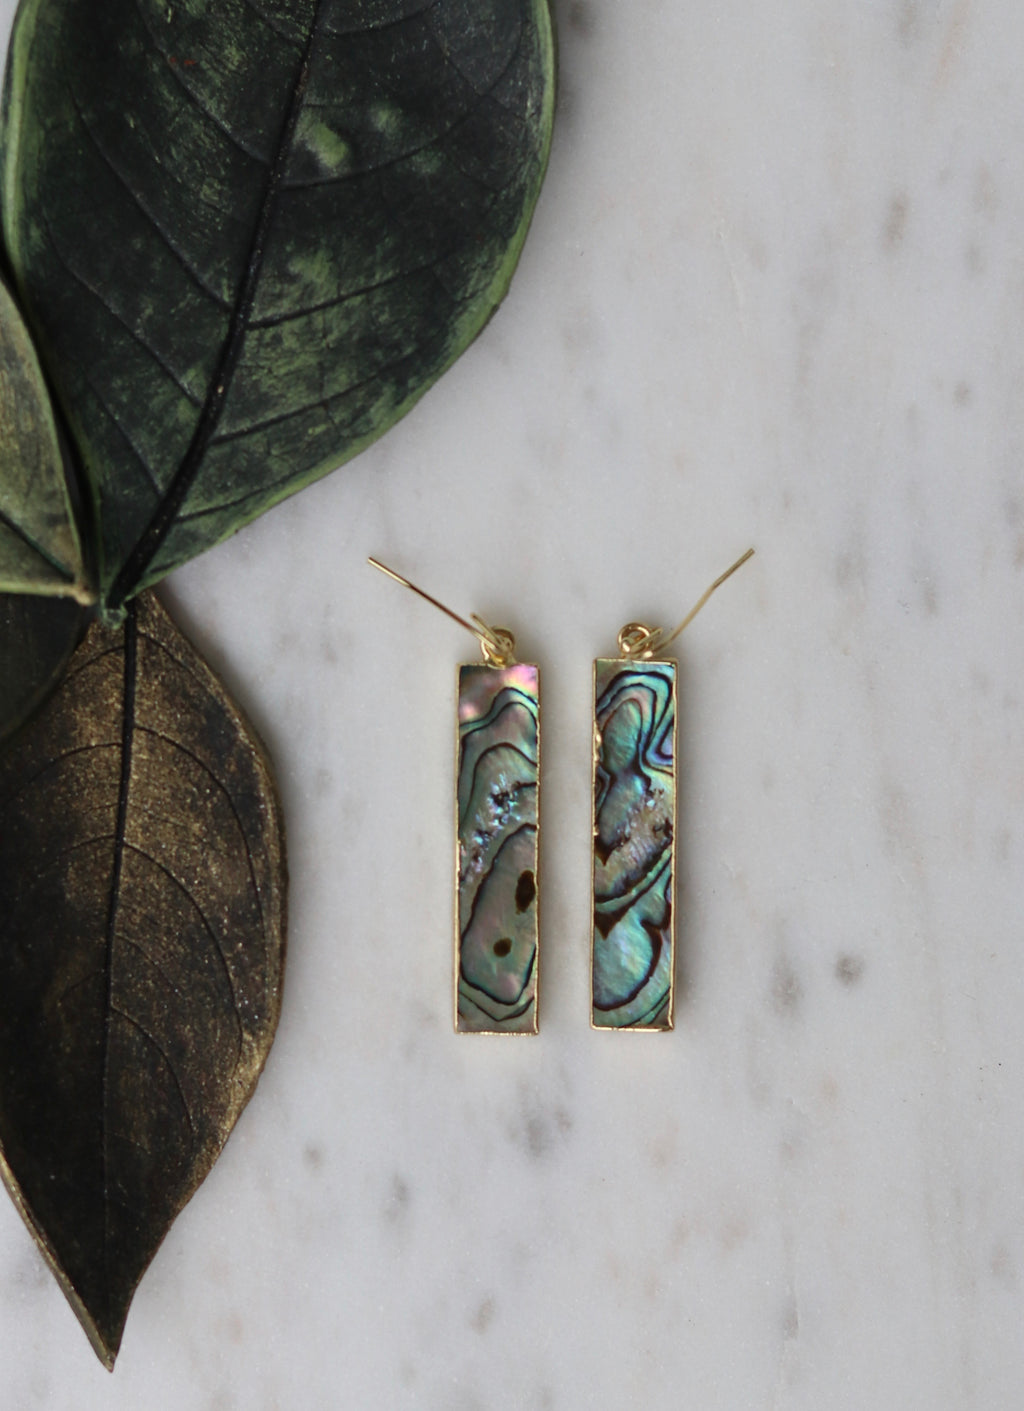 Abalone shell rectangular earrings - BurzanDesign